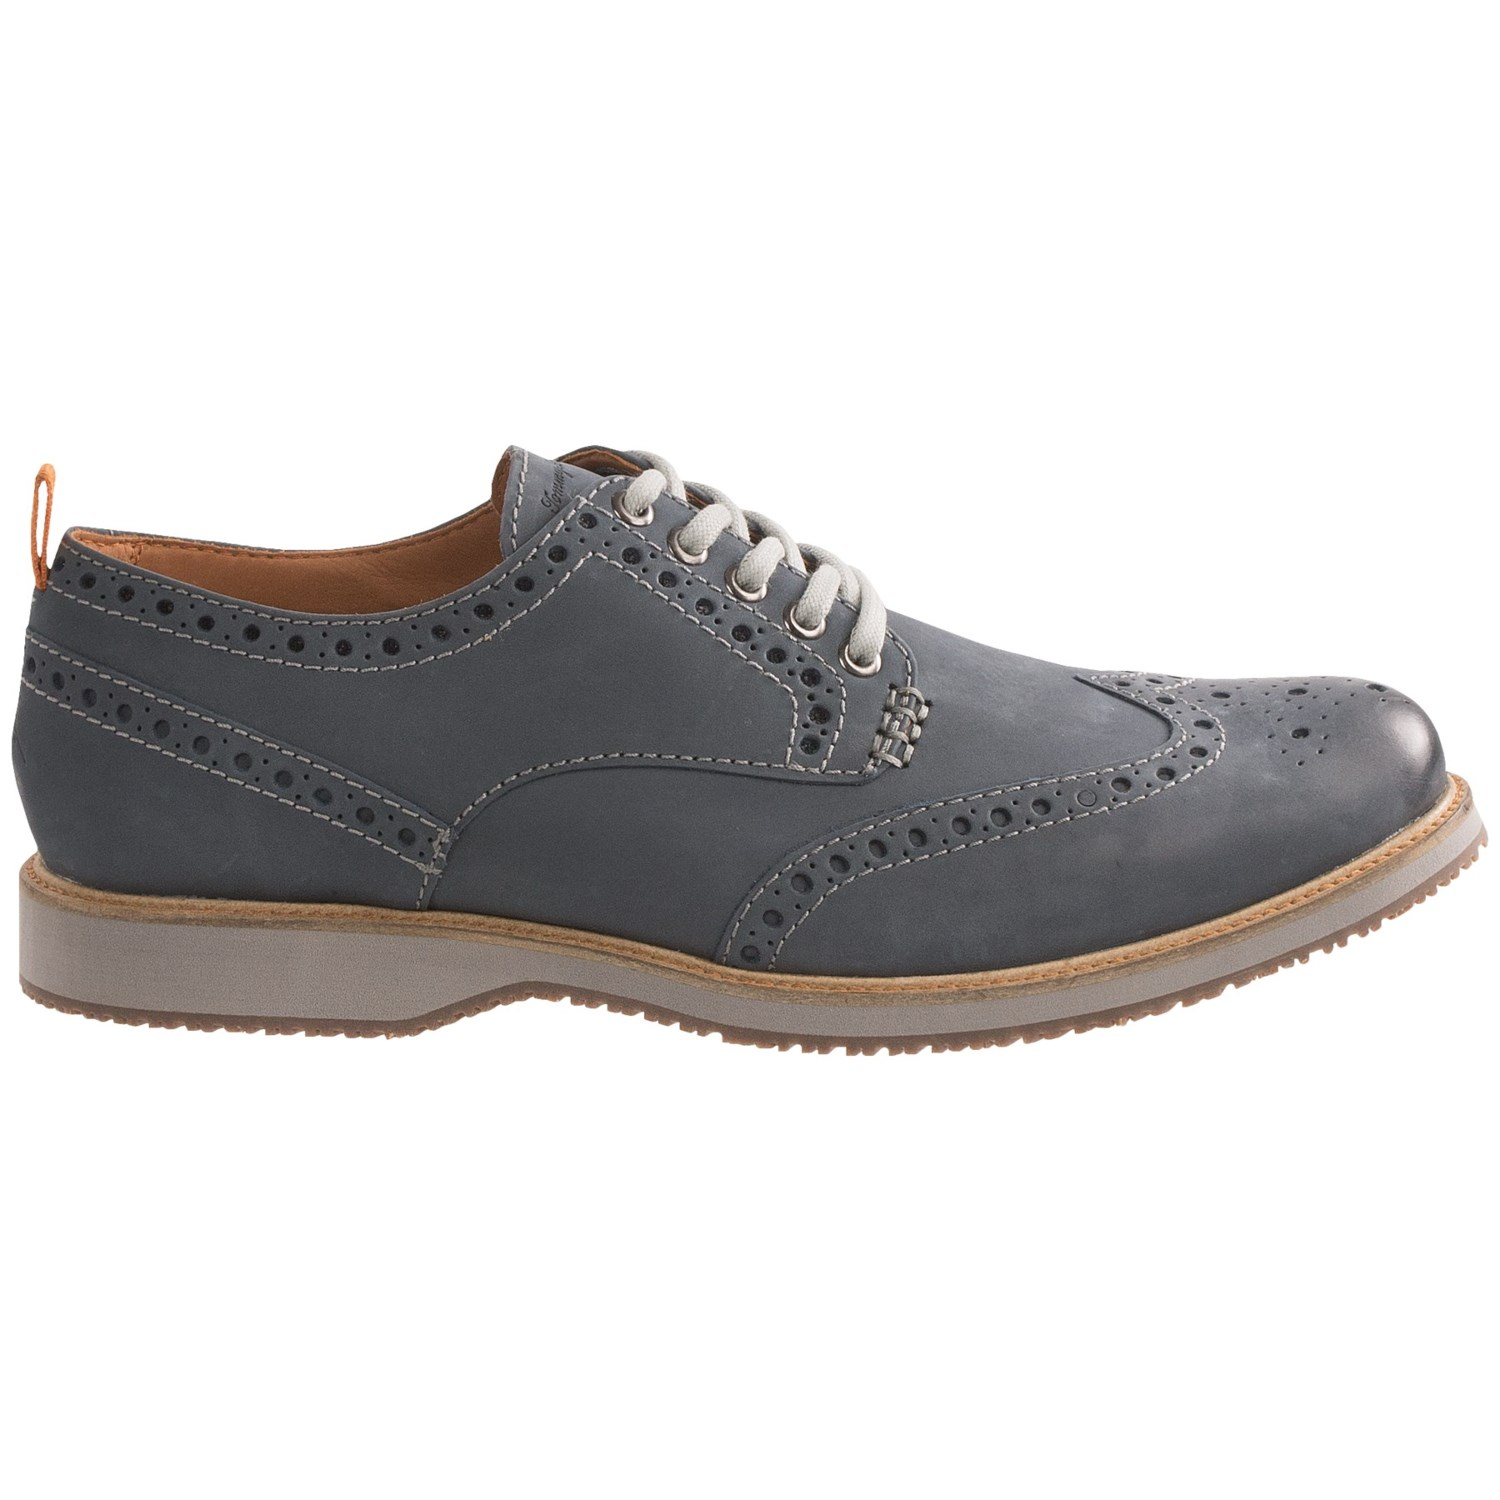 bahama elliot leather wingtip shoes for 7661r